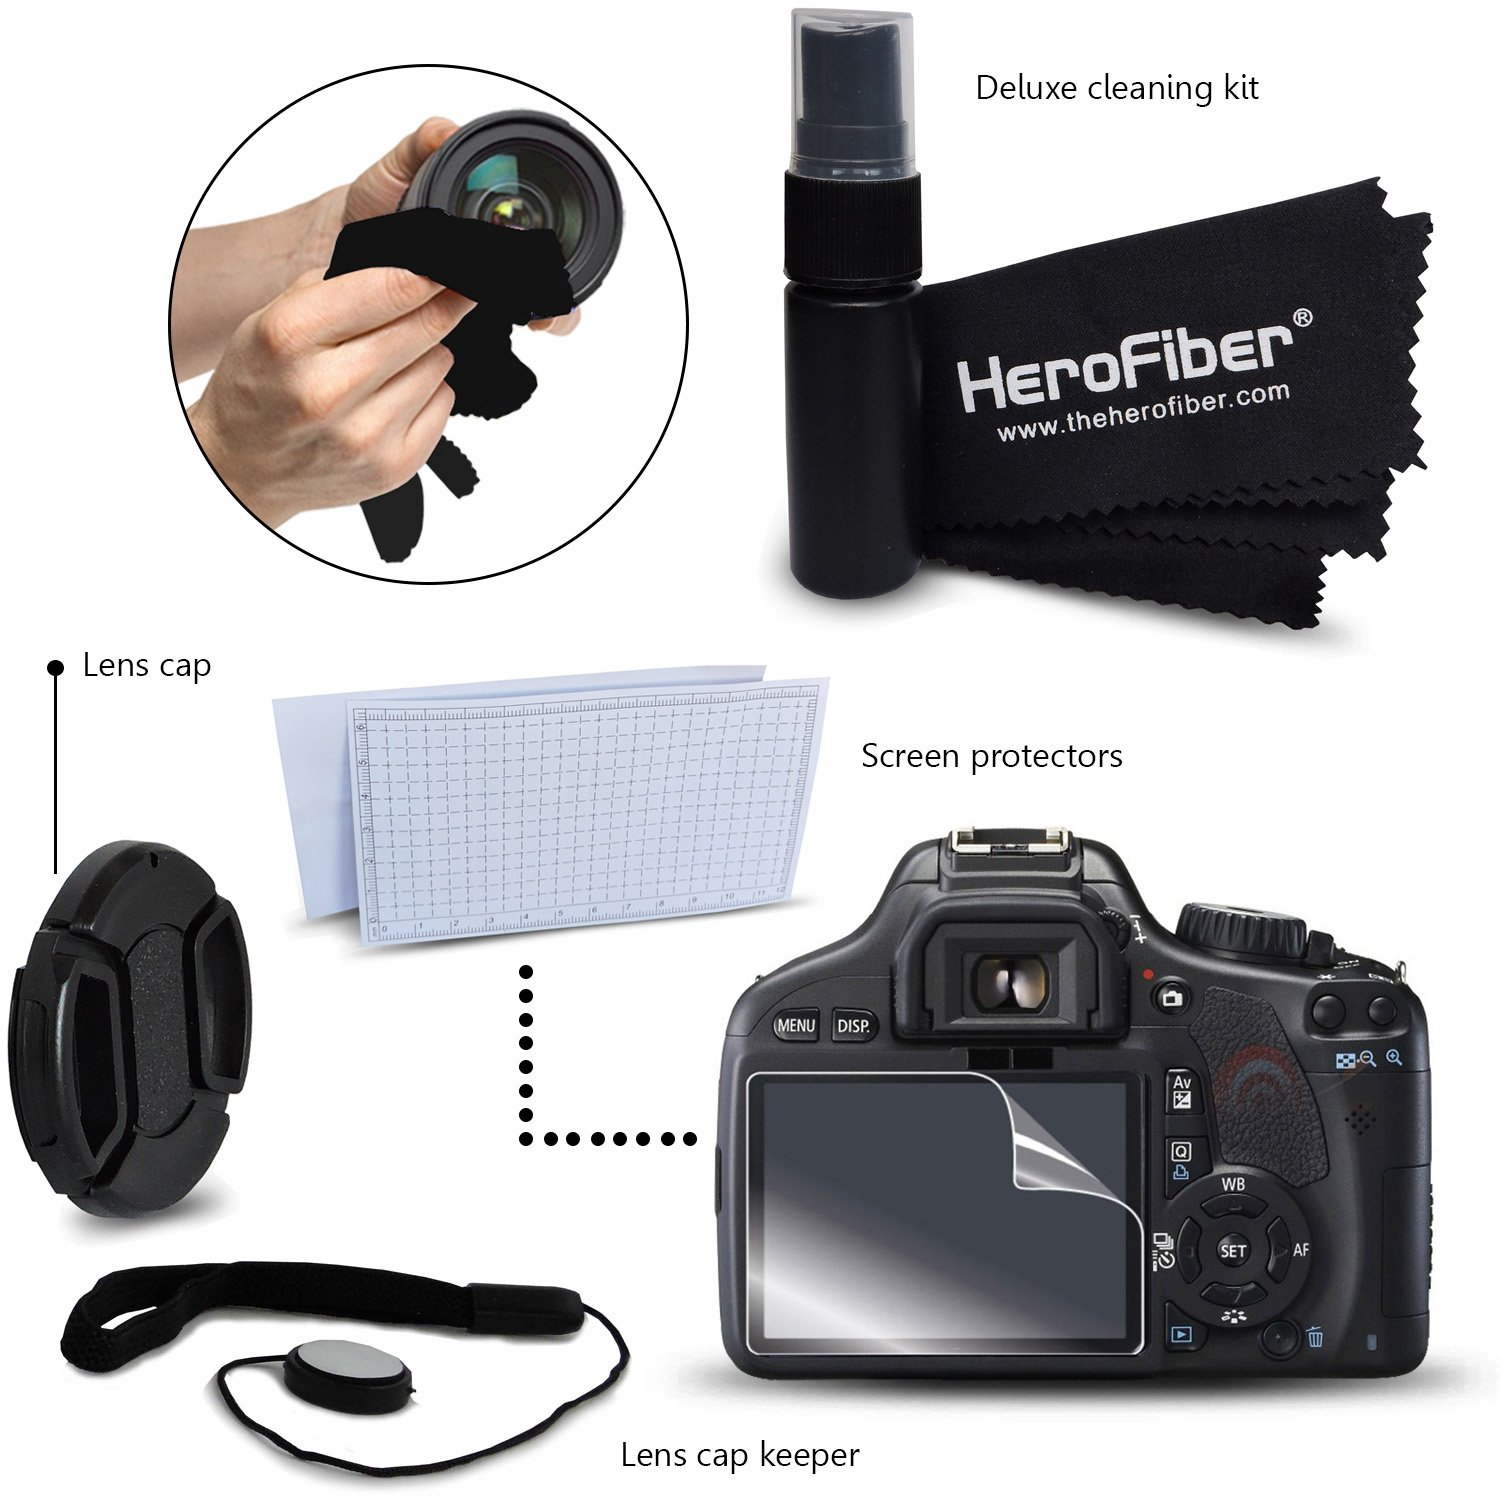 Ideal Accessory Kit for Canon Powershot SX160 IS, SX150 IS, SX130 IS, SX120 IS, SX110 IS, SX100 IS, SX20 IS, SX10 IS, SX5 IS, SX3 IS, SX2 IS, SX1 IS, A2100 IS, A2000 IS, A1400 Digital Cameras Includes 16GB High Speed Memory Card + 4 AA High Capacity 3100m